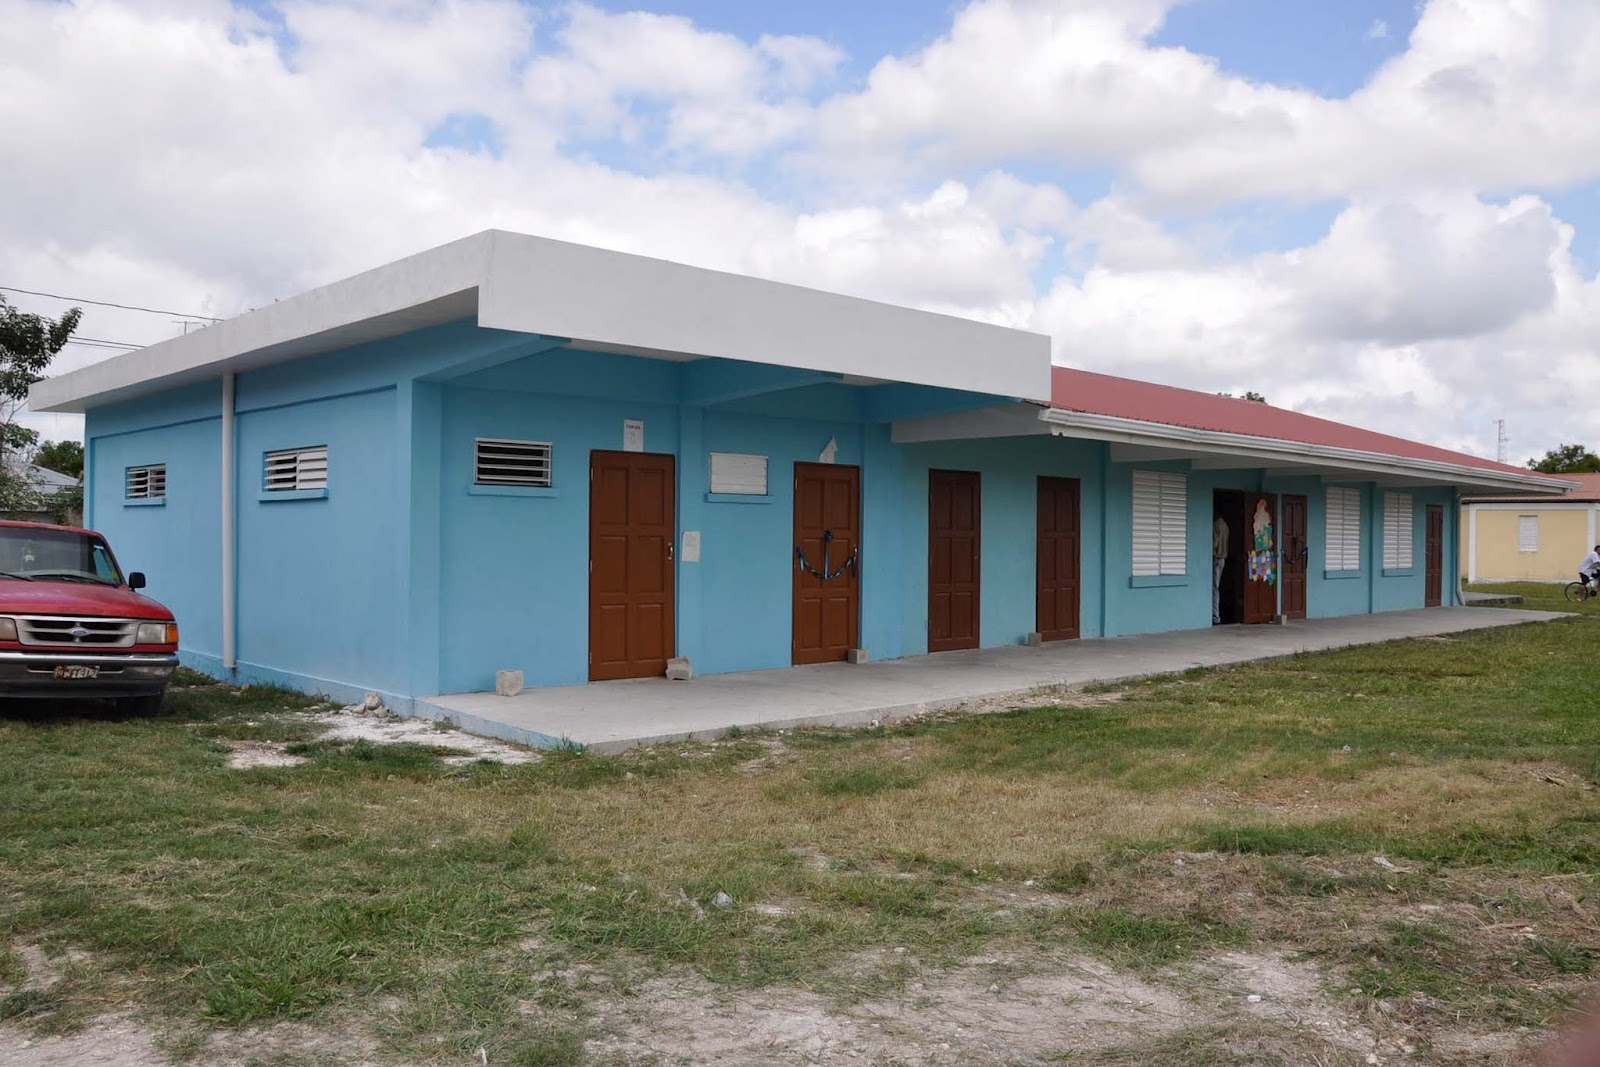 Village View Post Renovated School In Cristo Rey Village